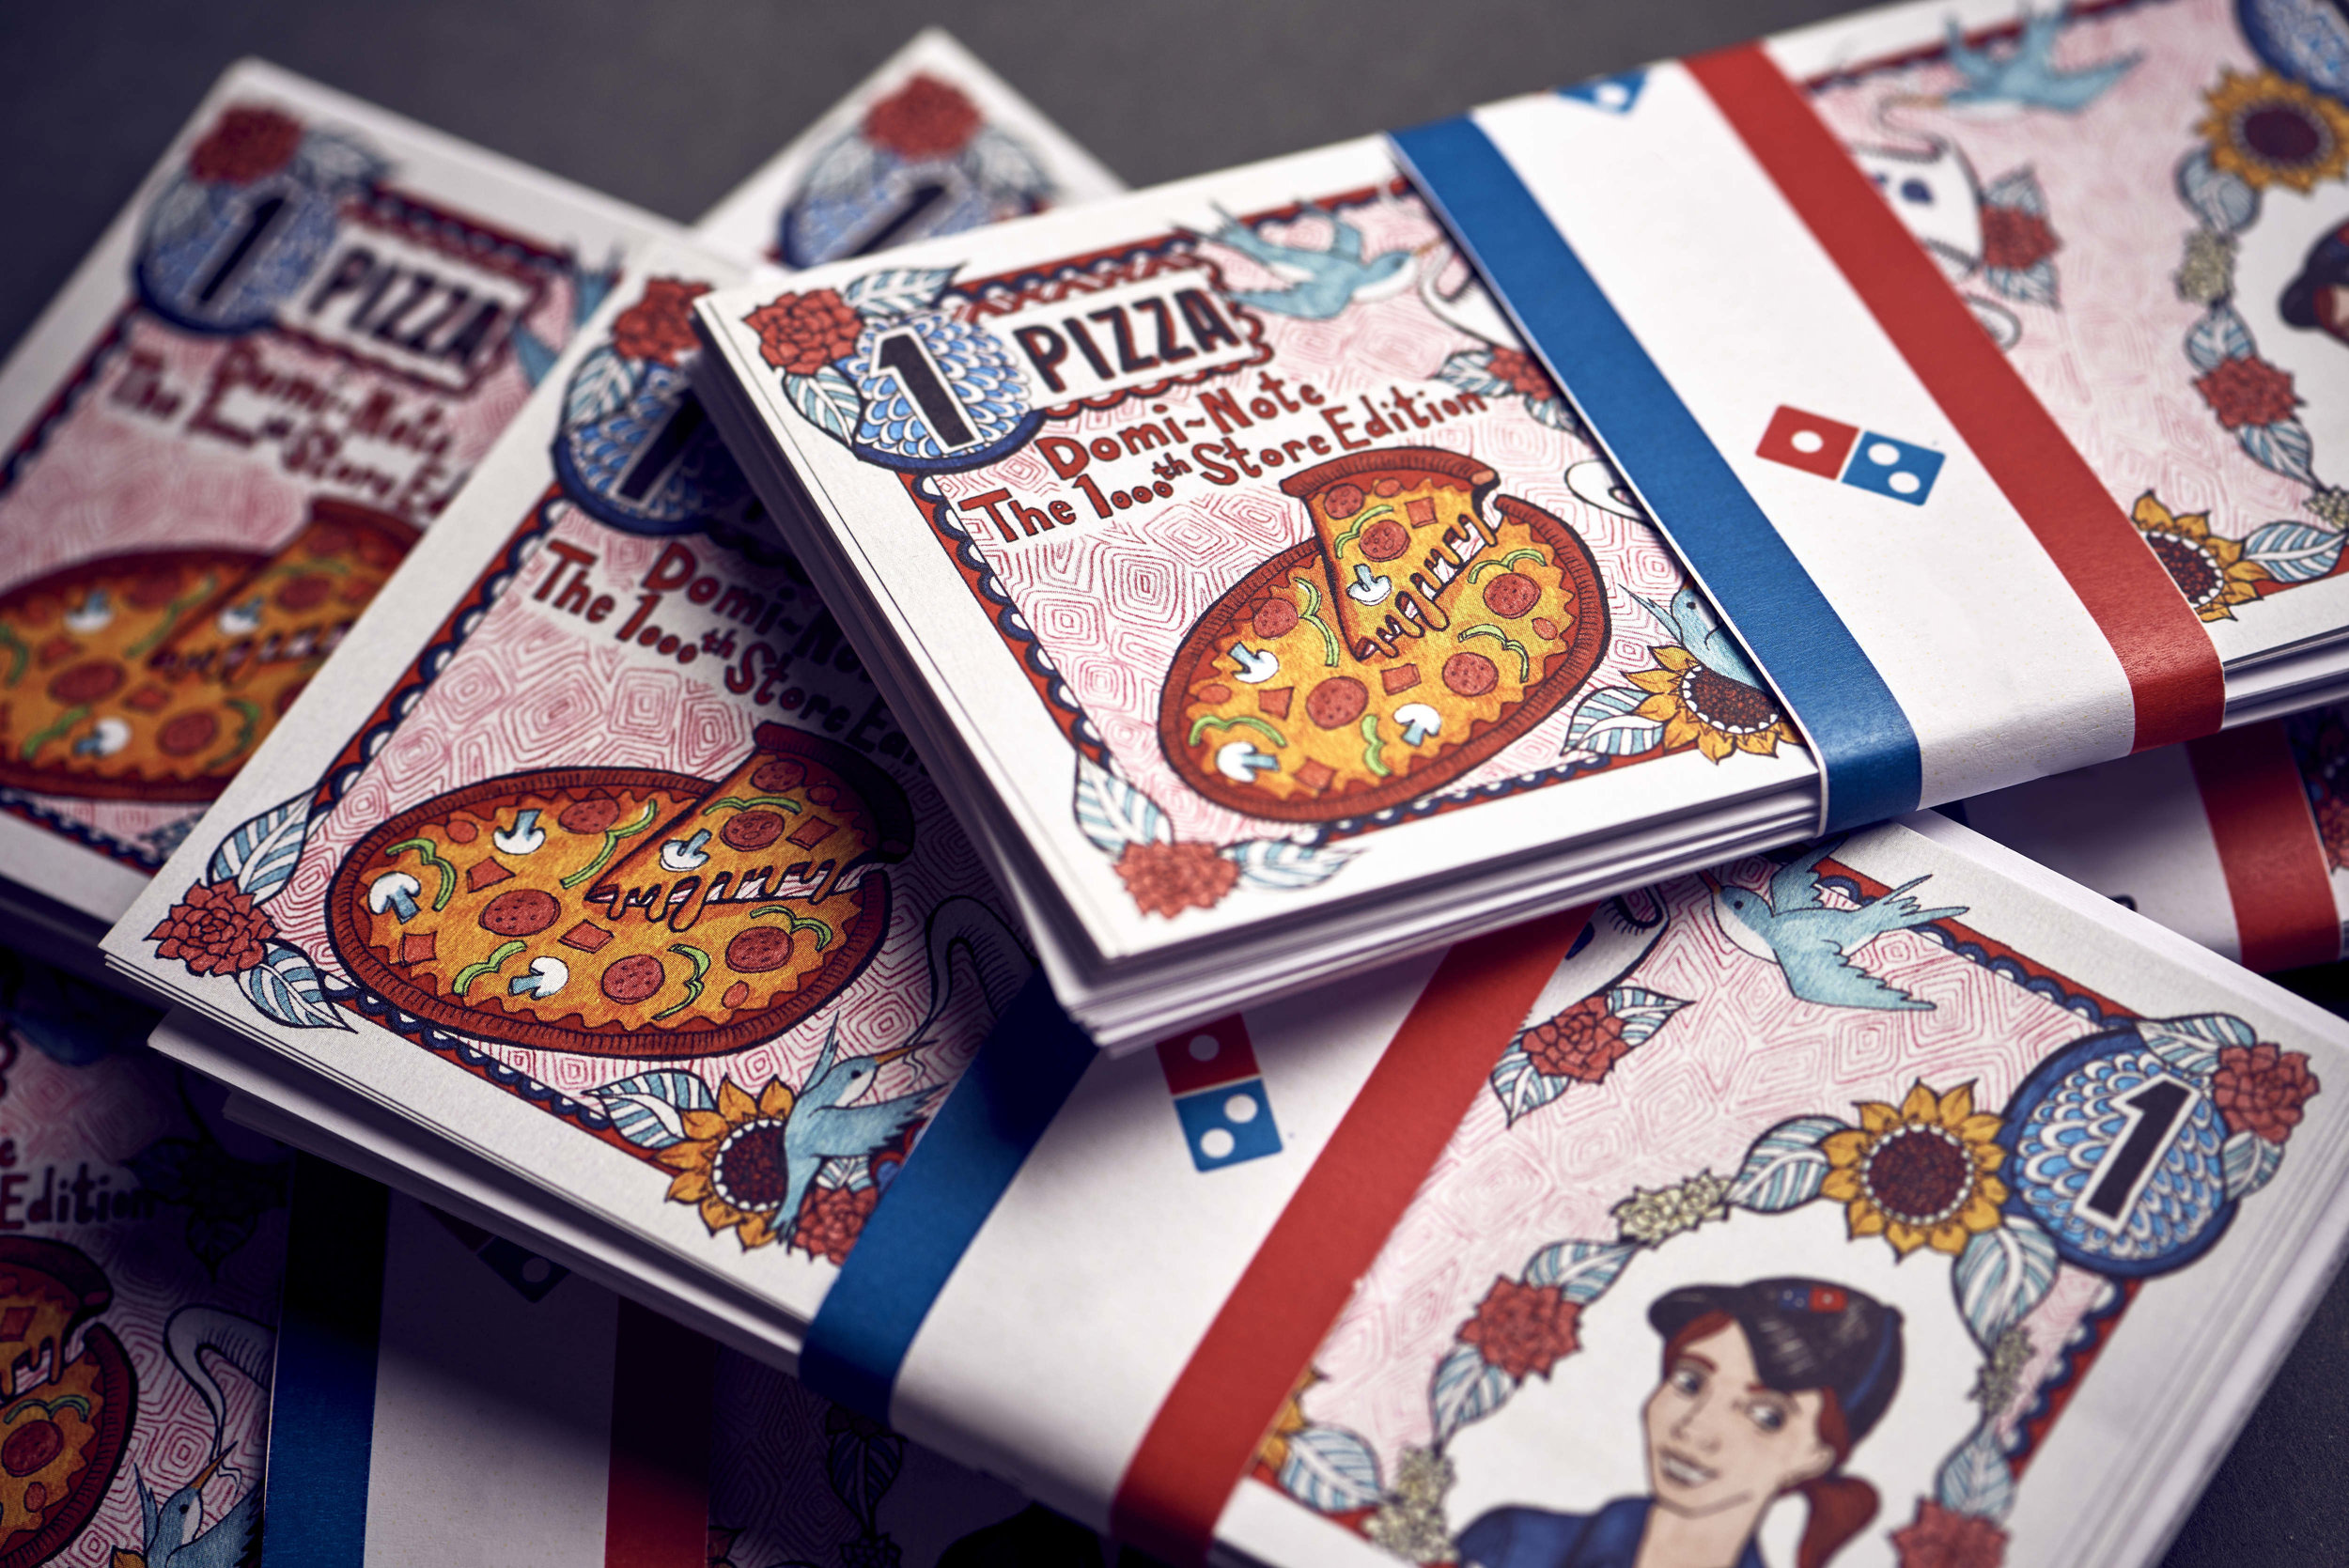 100 Domin-notes were hidden around Overton Hampshire. Lucky finders received a free pizza.